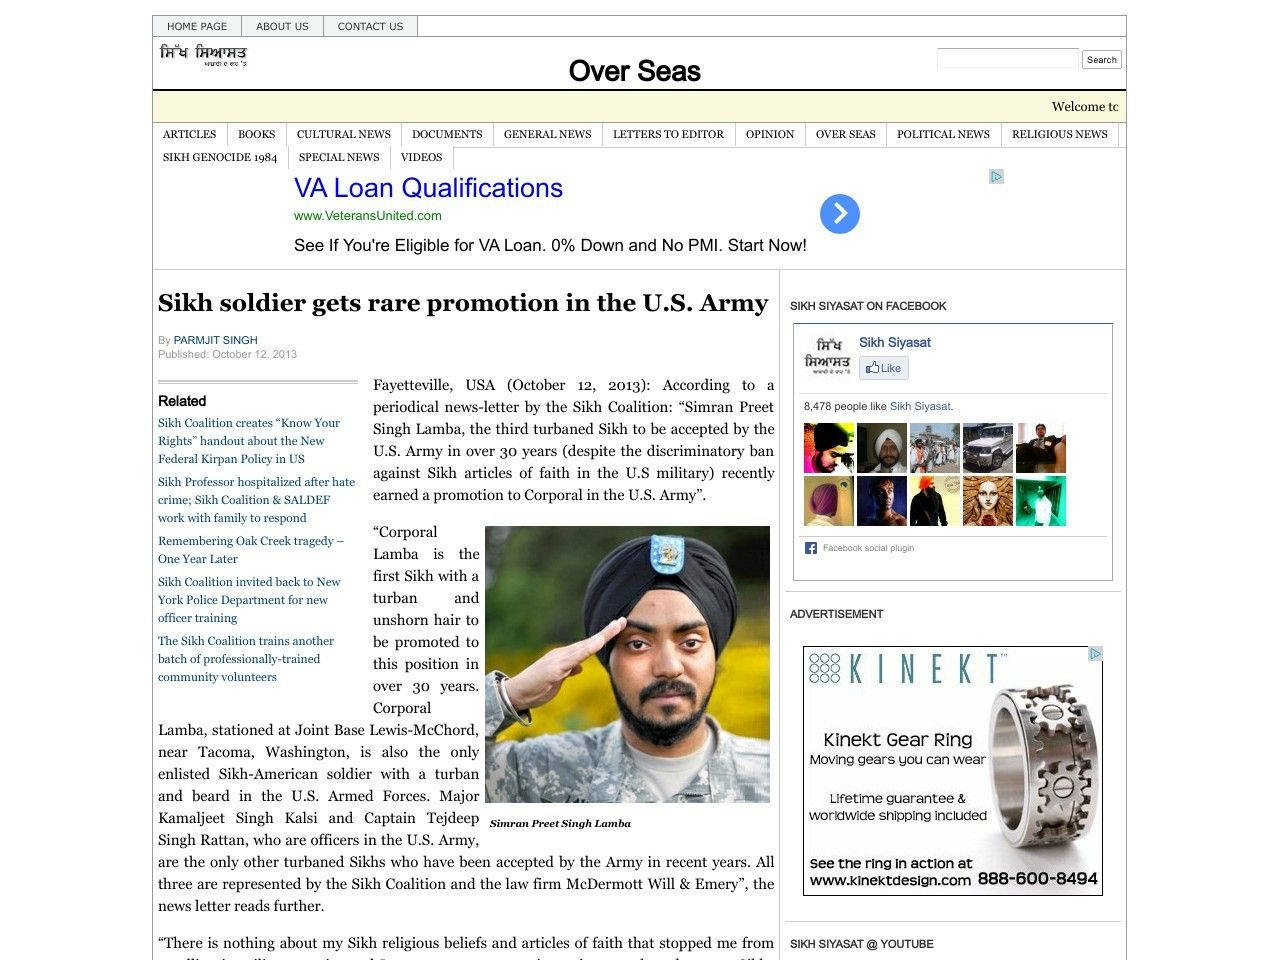 Sikh soldier gets rare promotion in the US Army